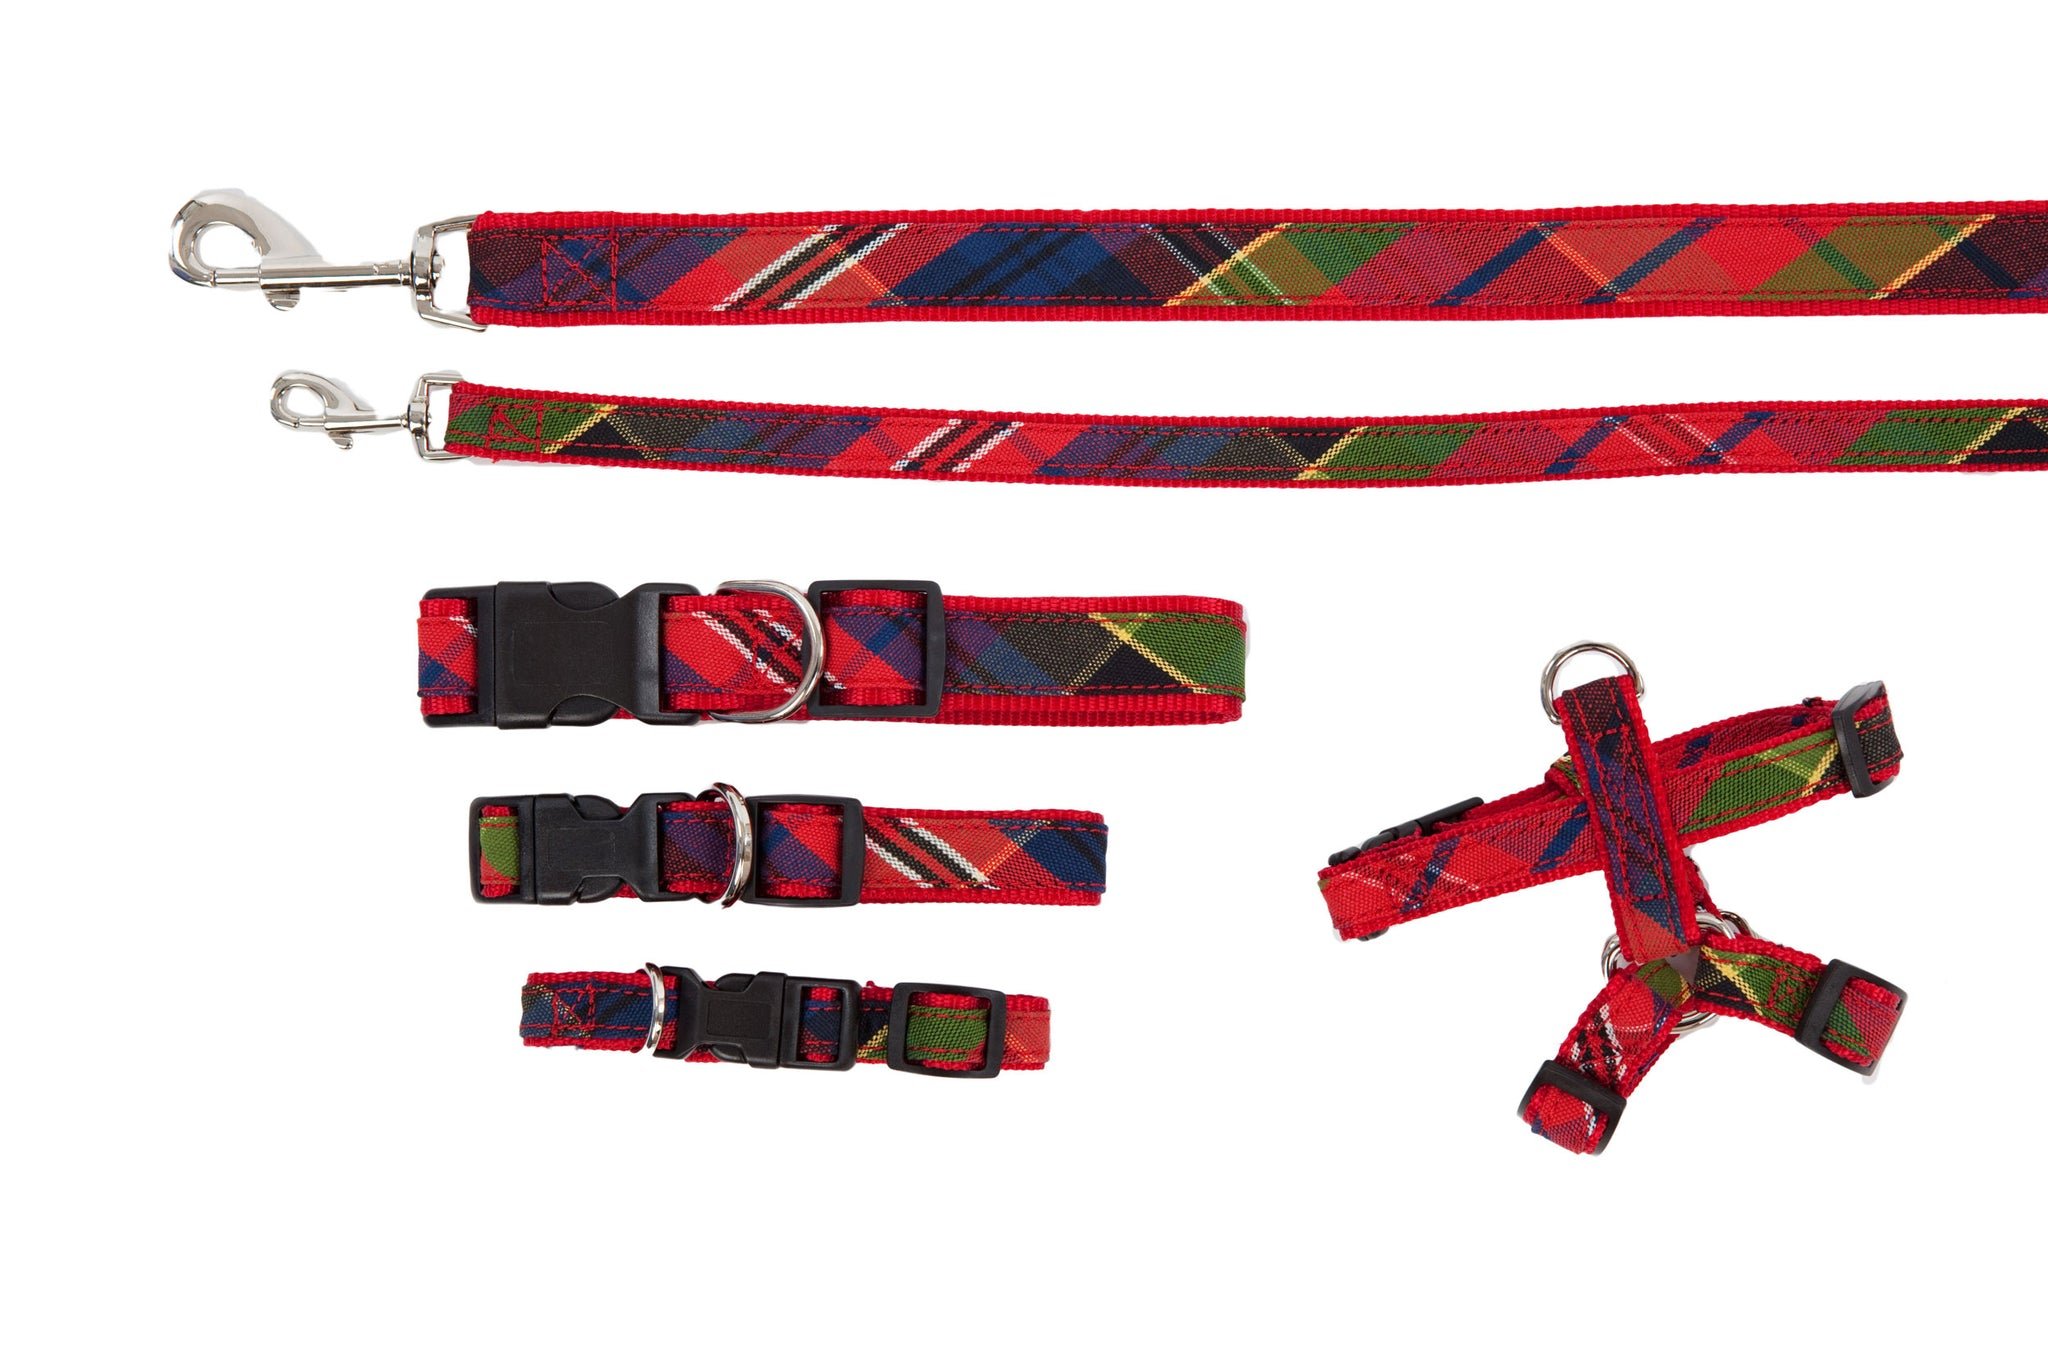 Signature Collection - Dog Collars, Harnesses, Leads - Red & Green Tartan